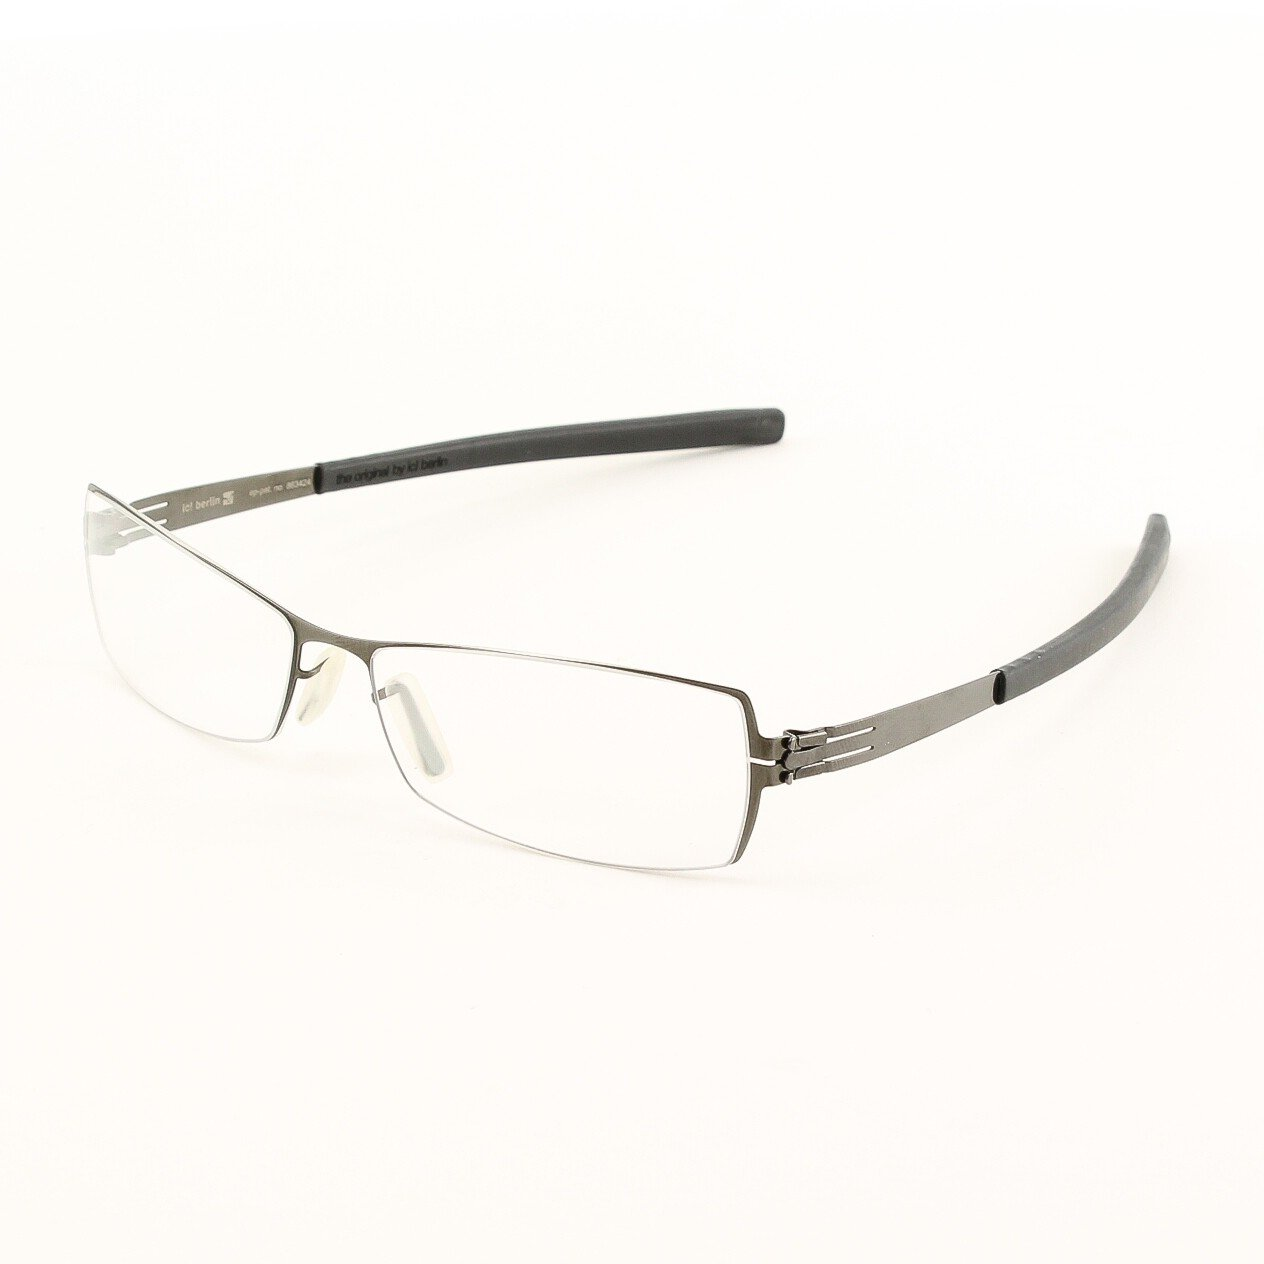 ic! Berlin Tina M. Eyeglasses Col. Black with Clear Lenses